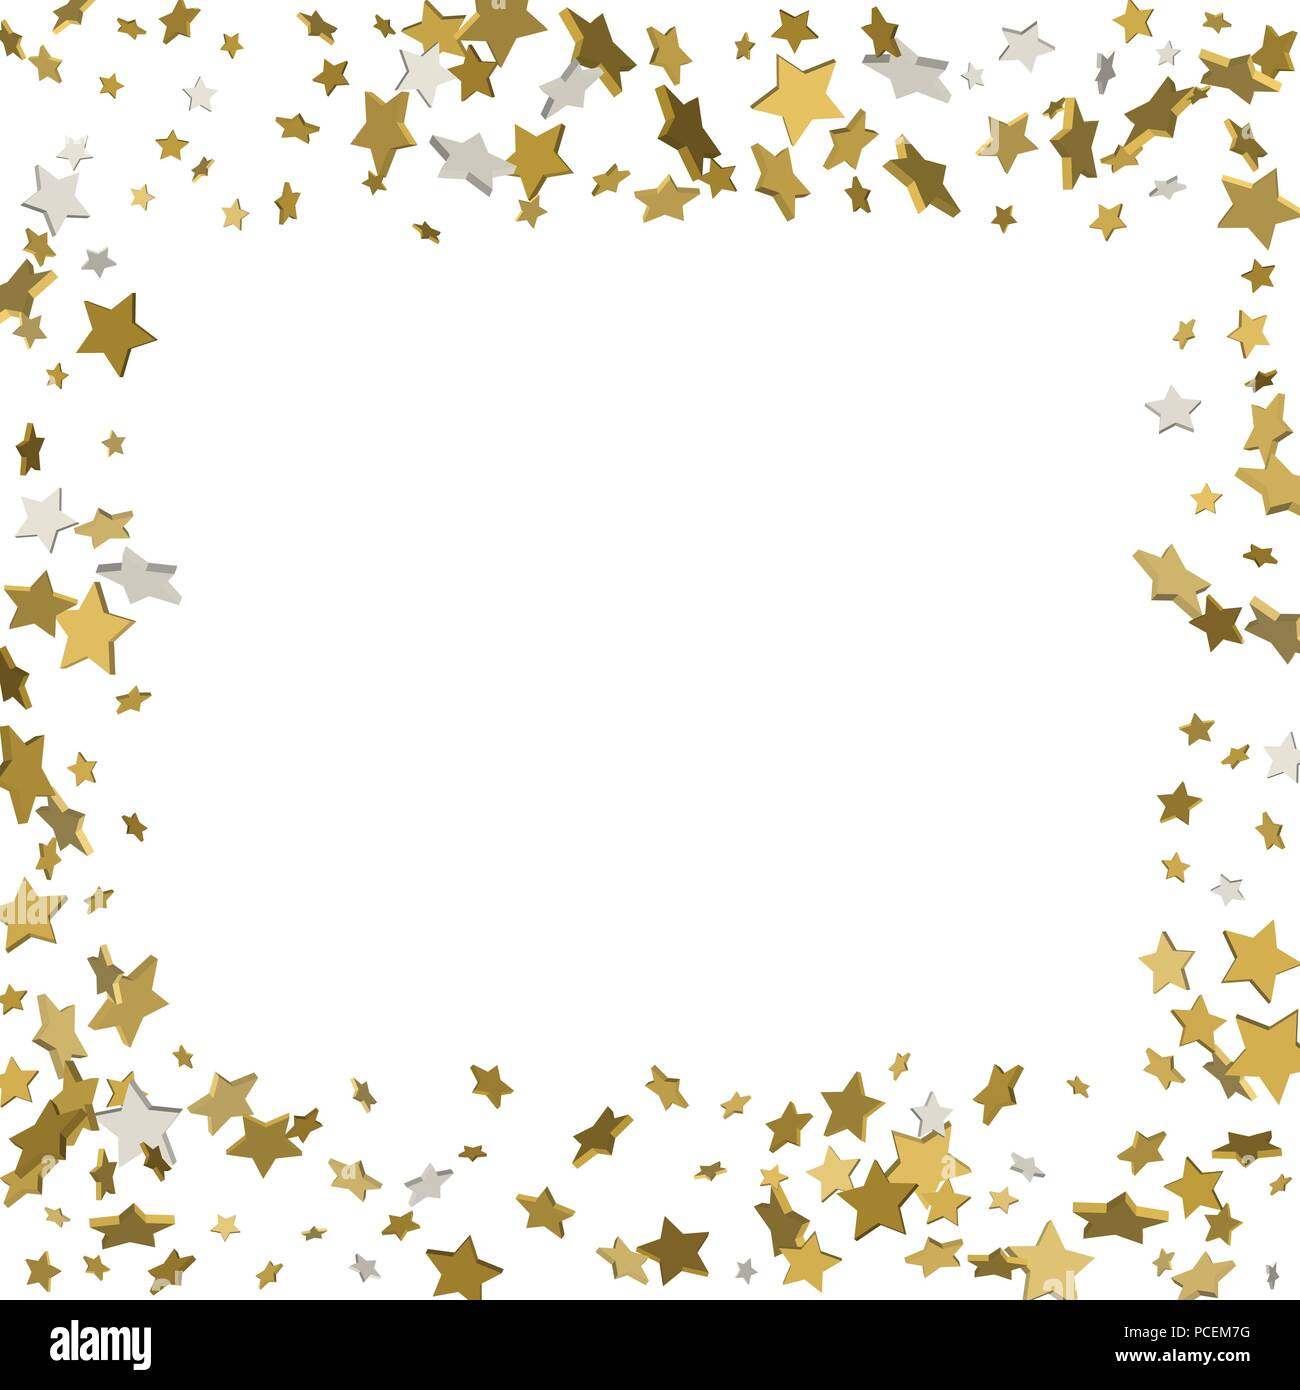 3d gold frame or border of random scatter golden stars on white 3d gold frame or border of random scatter golden stars on white background design element for festive banner birthday and greeting card postcard w m4hsunfo